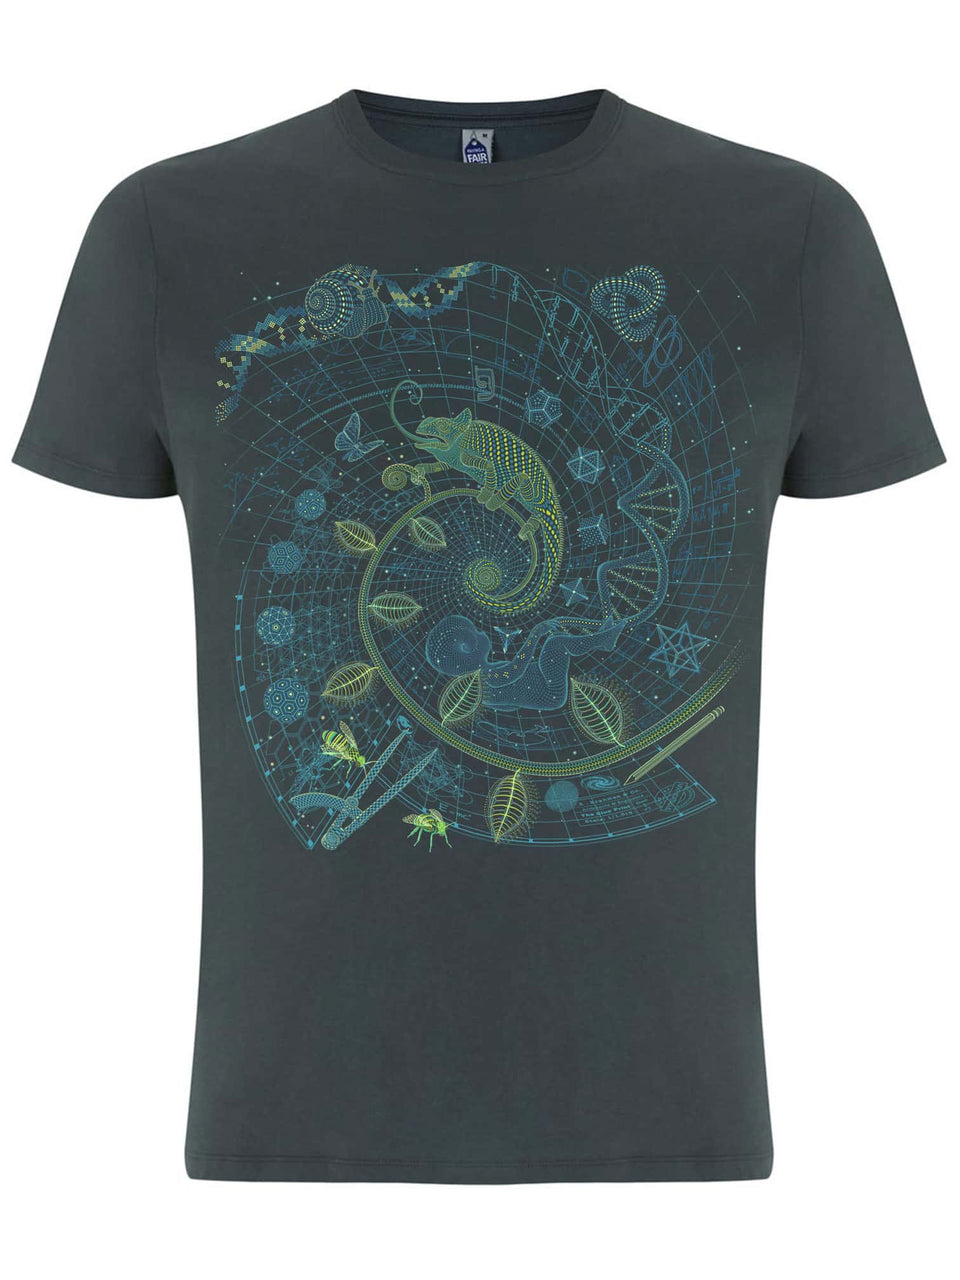 The BluePrint -Land - Made To Order Men T-Shirt - Light Charcoal